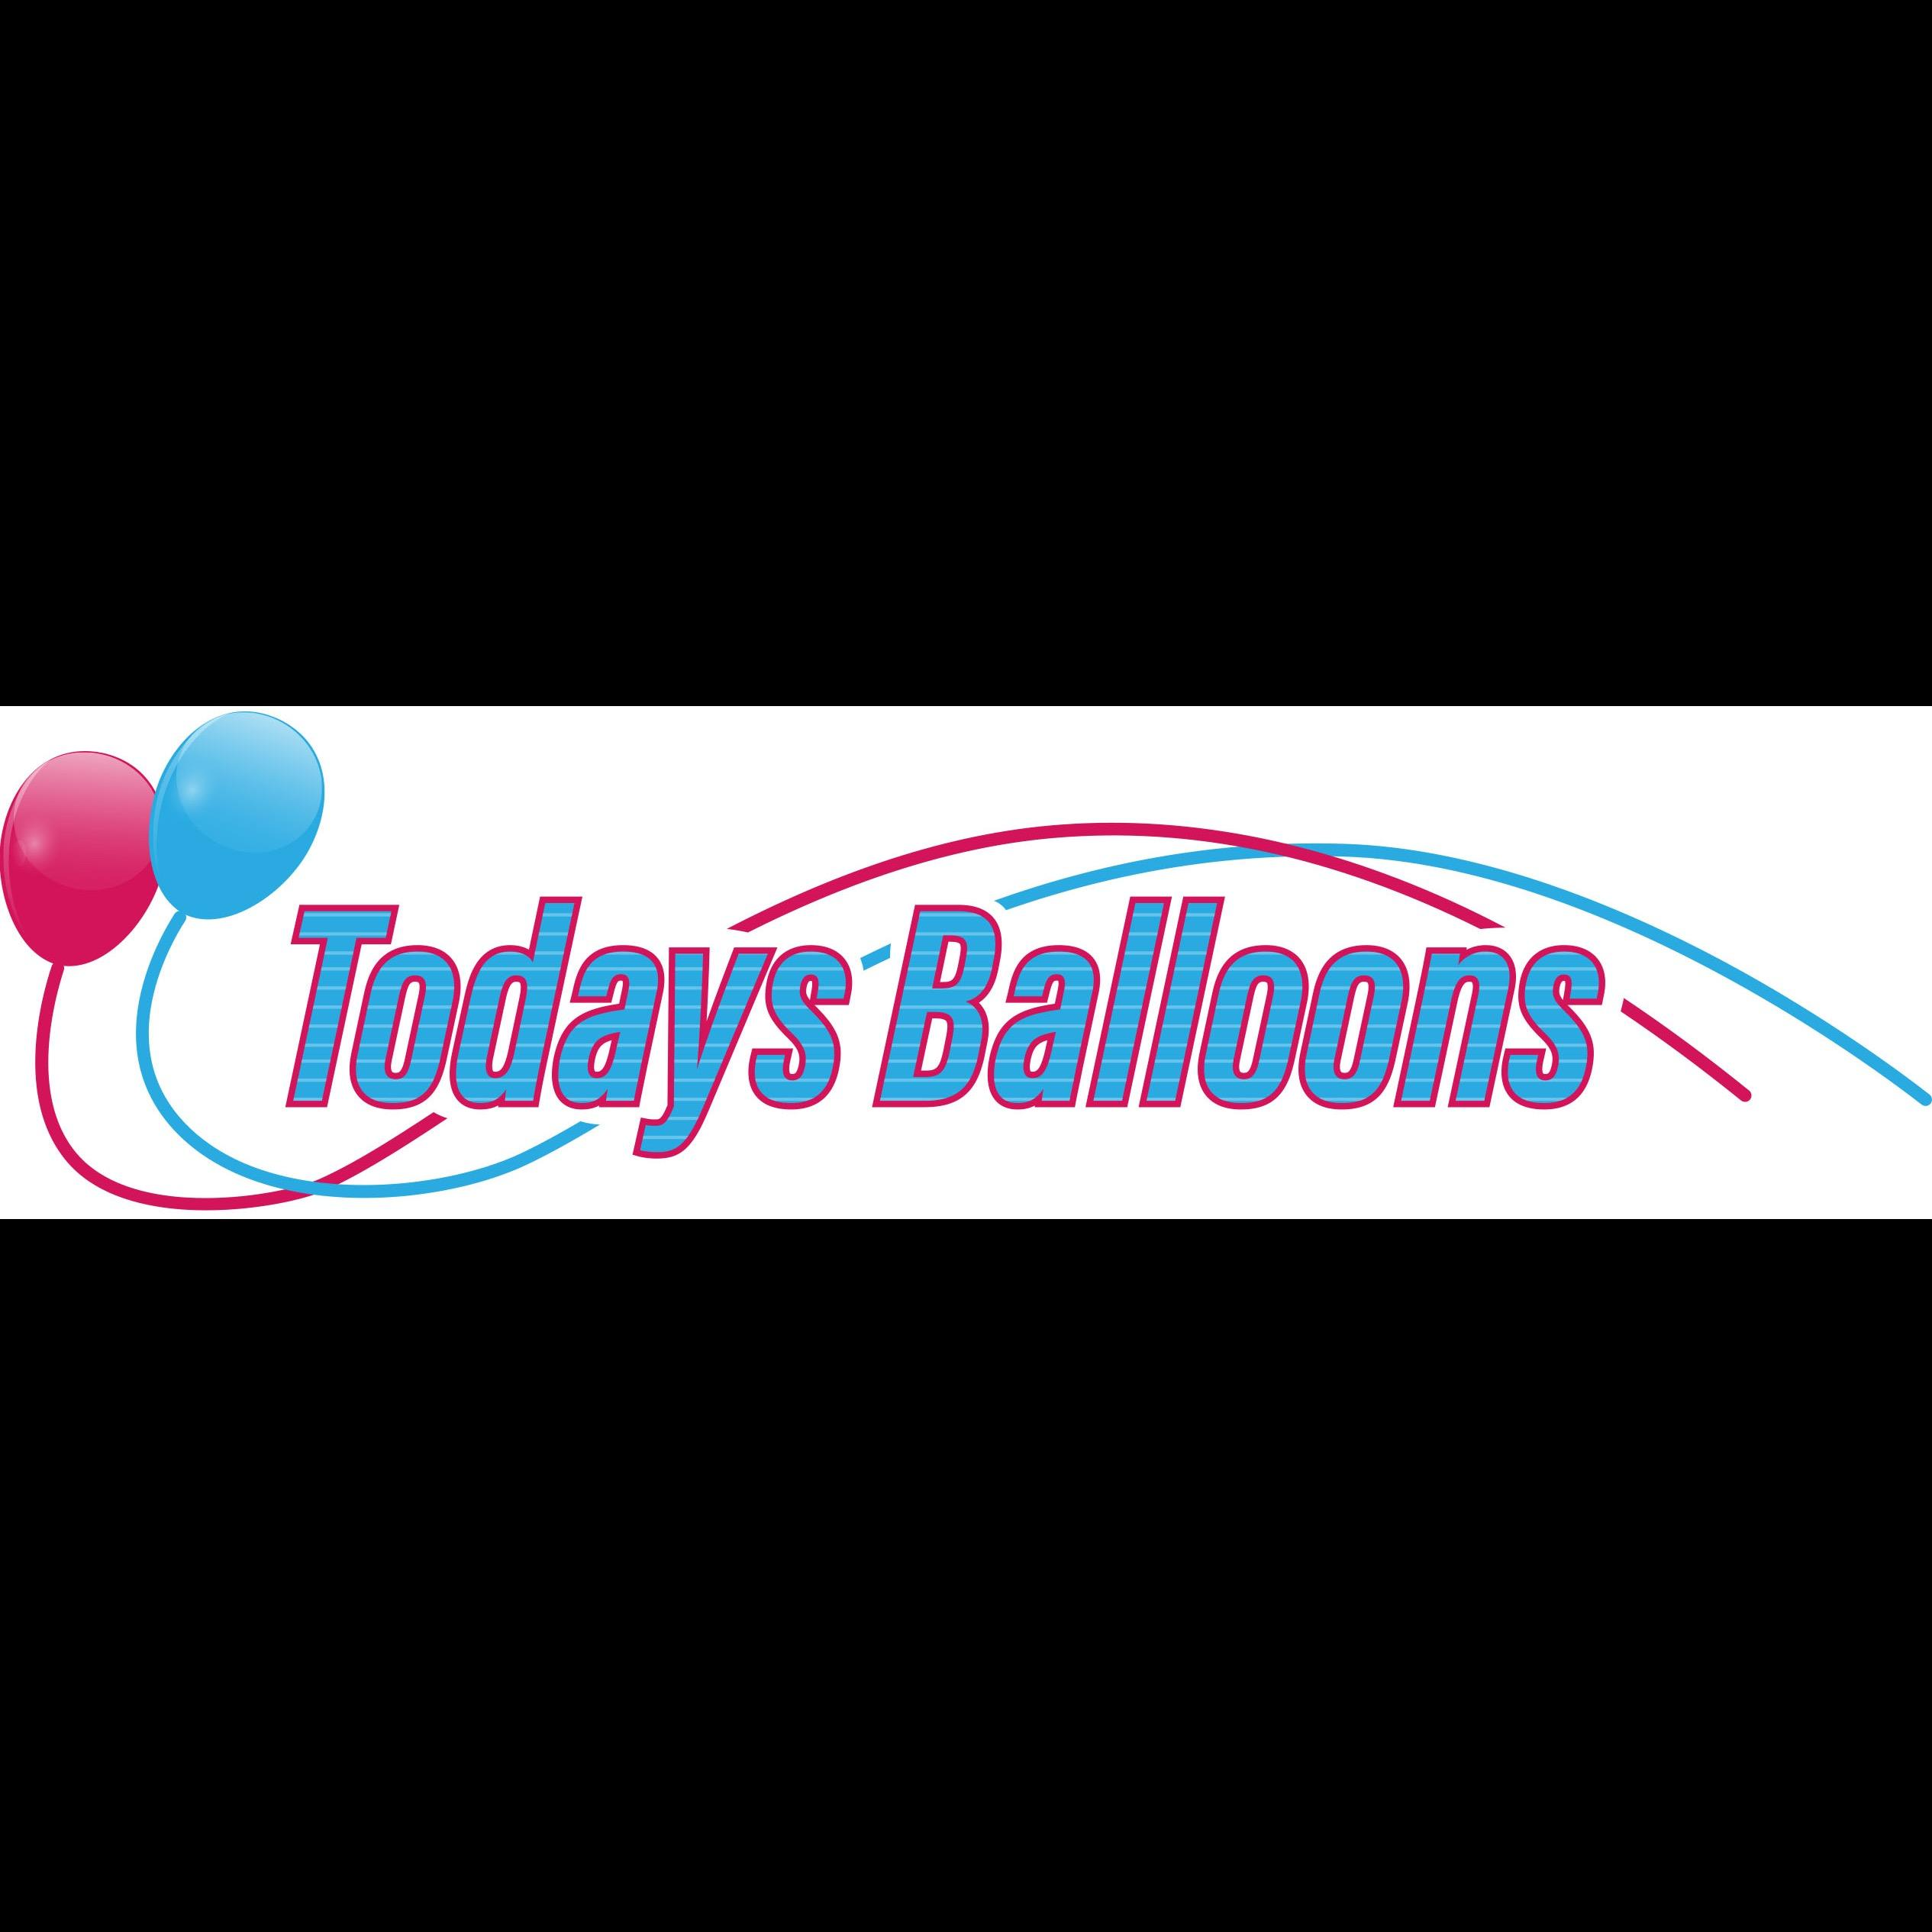 Today's Balloons